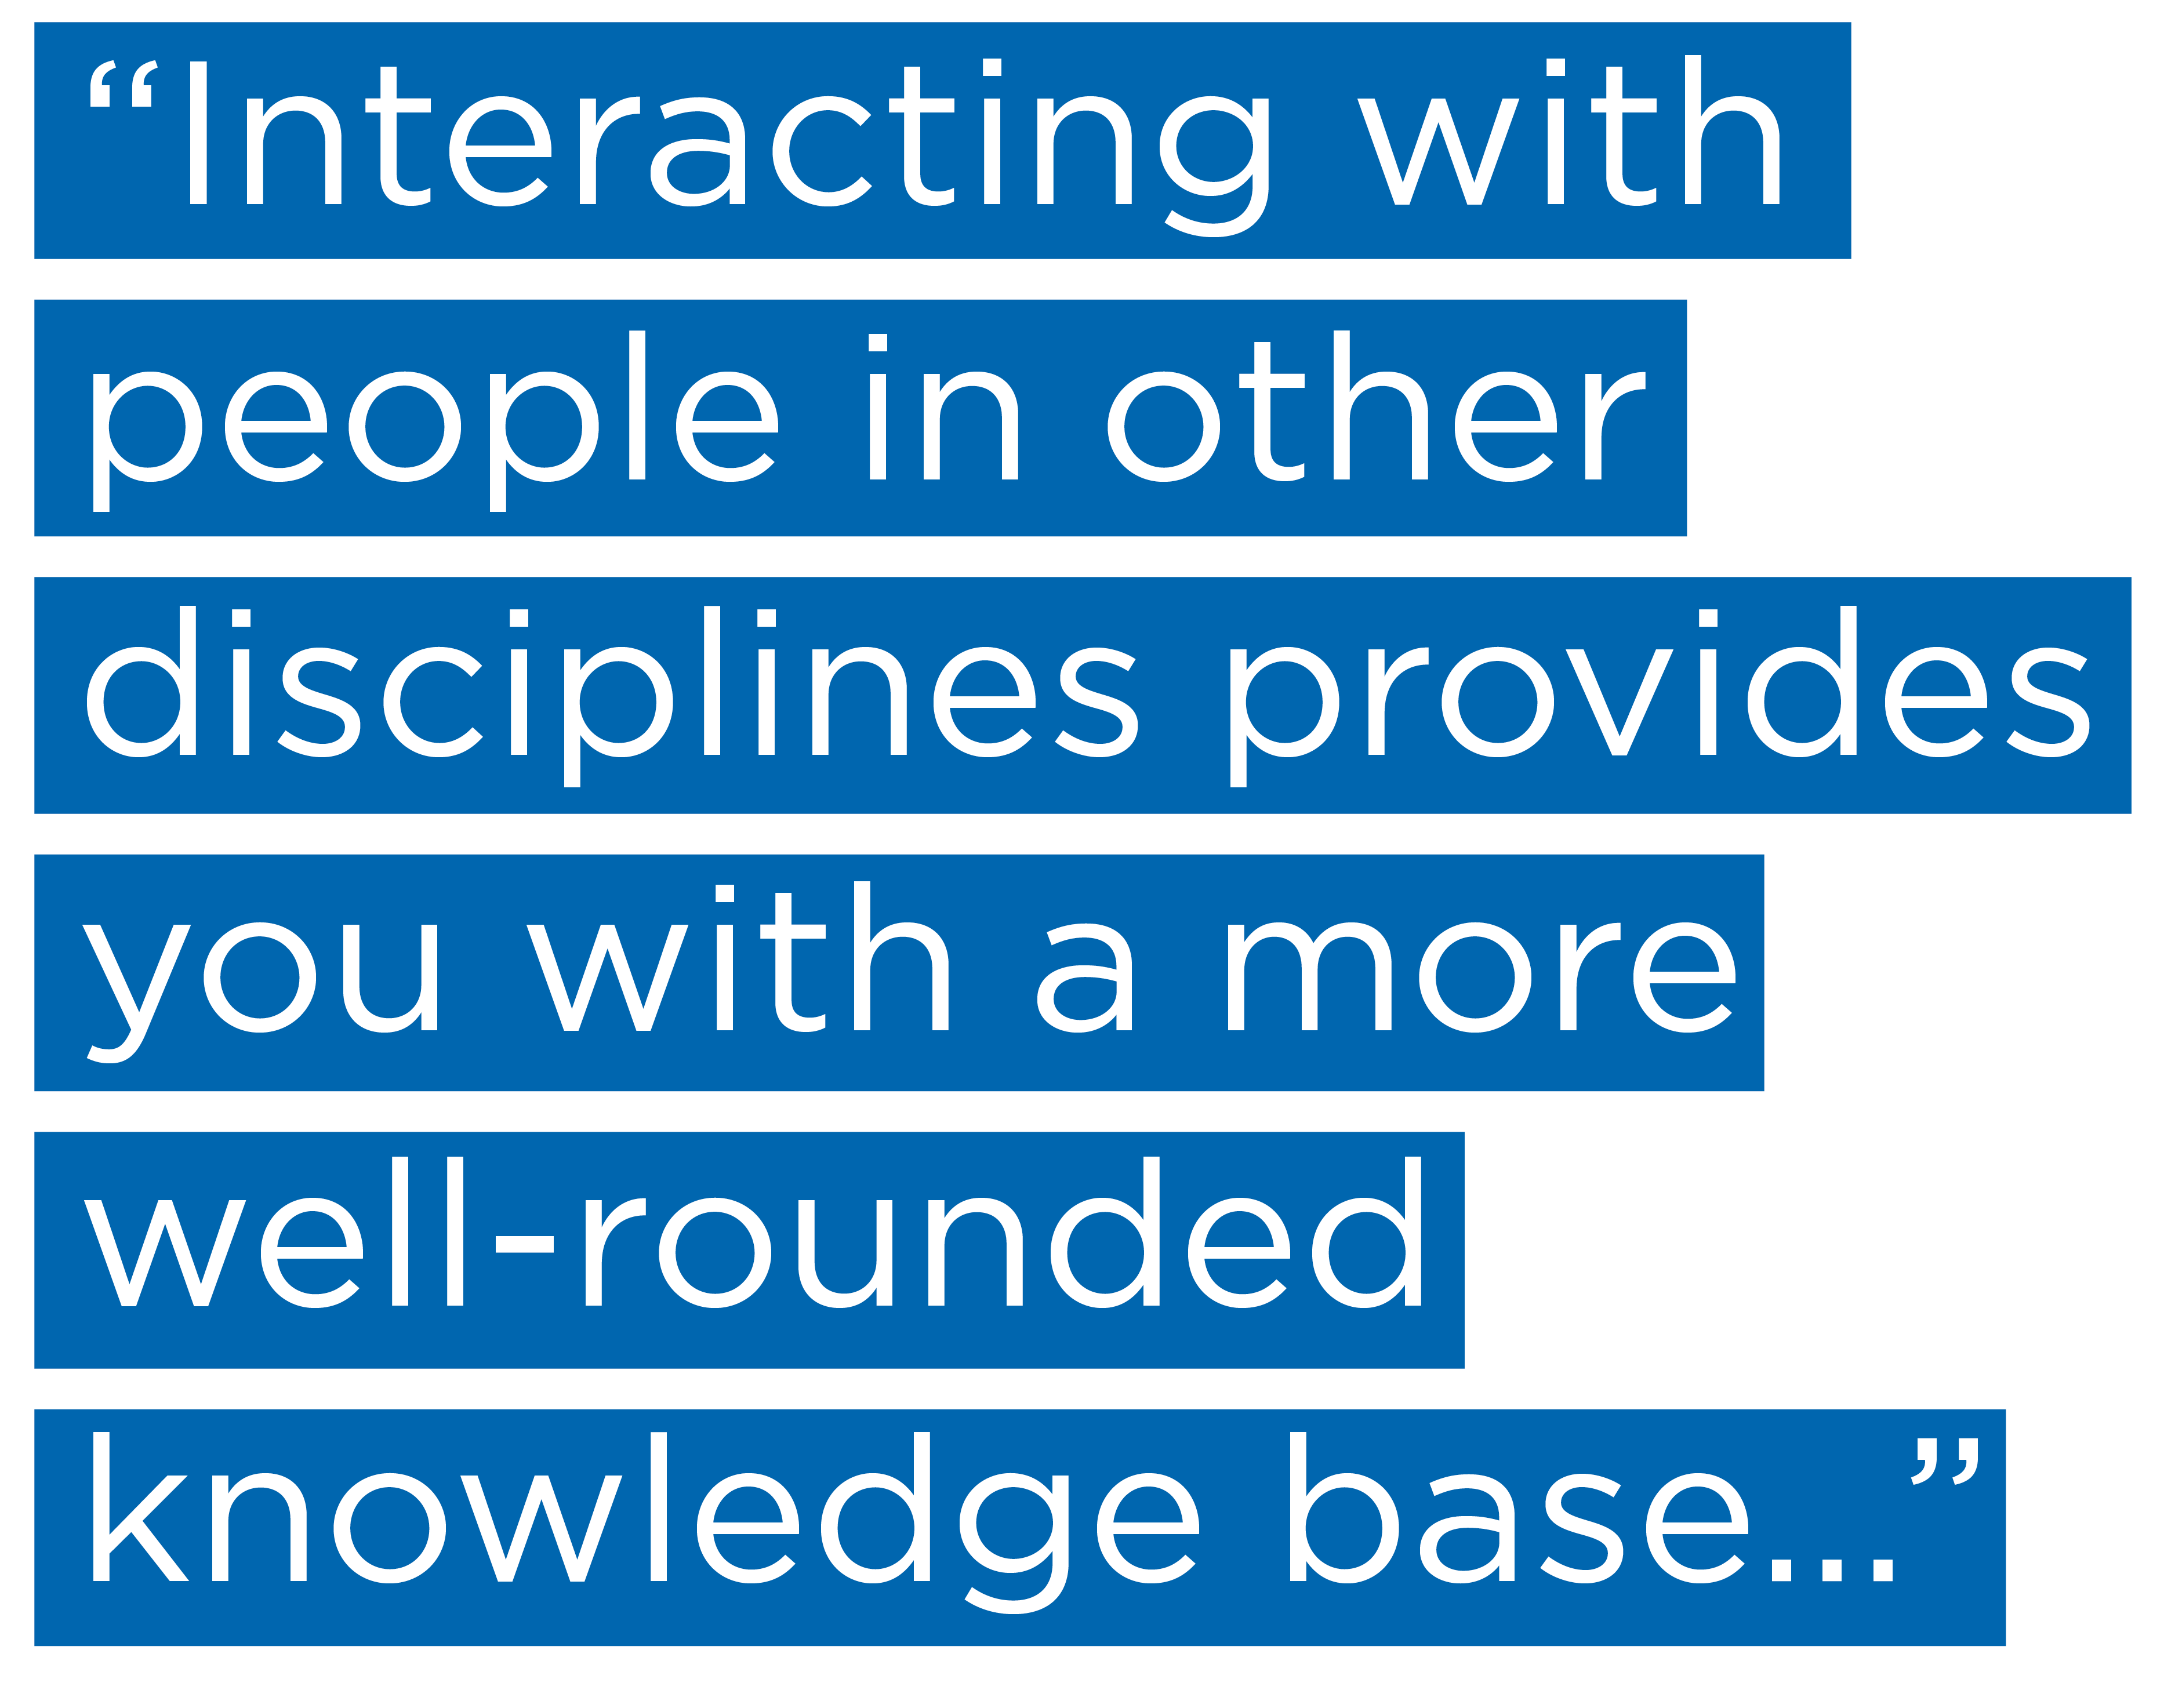 """""""Interacting with people in other disciplines provides you with a more well-rounded knowledge base..."""""""